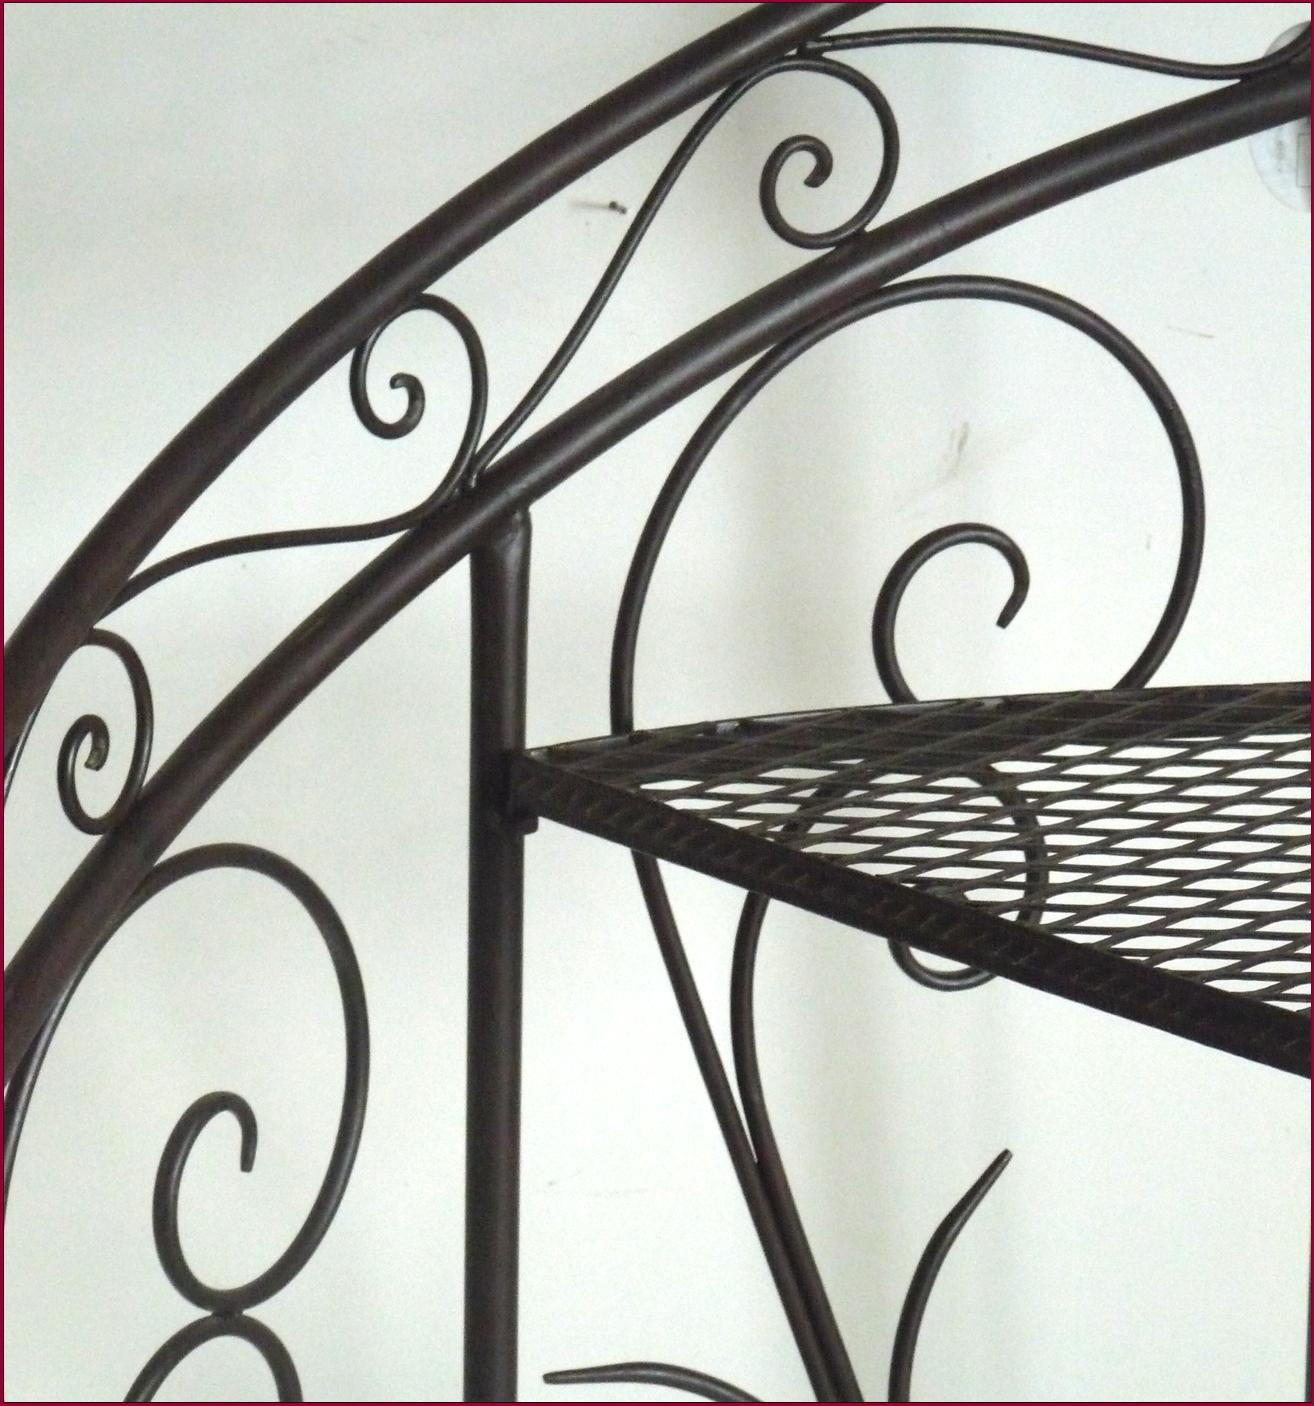 old style door iron staircase plant pot planter book shelf console ebay. Black Bedroom Furniture Sets. Home Design Ideas